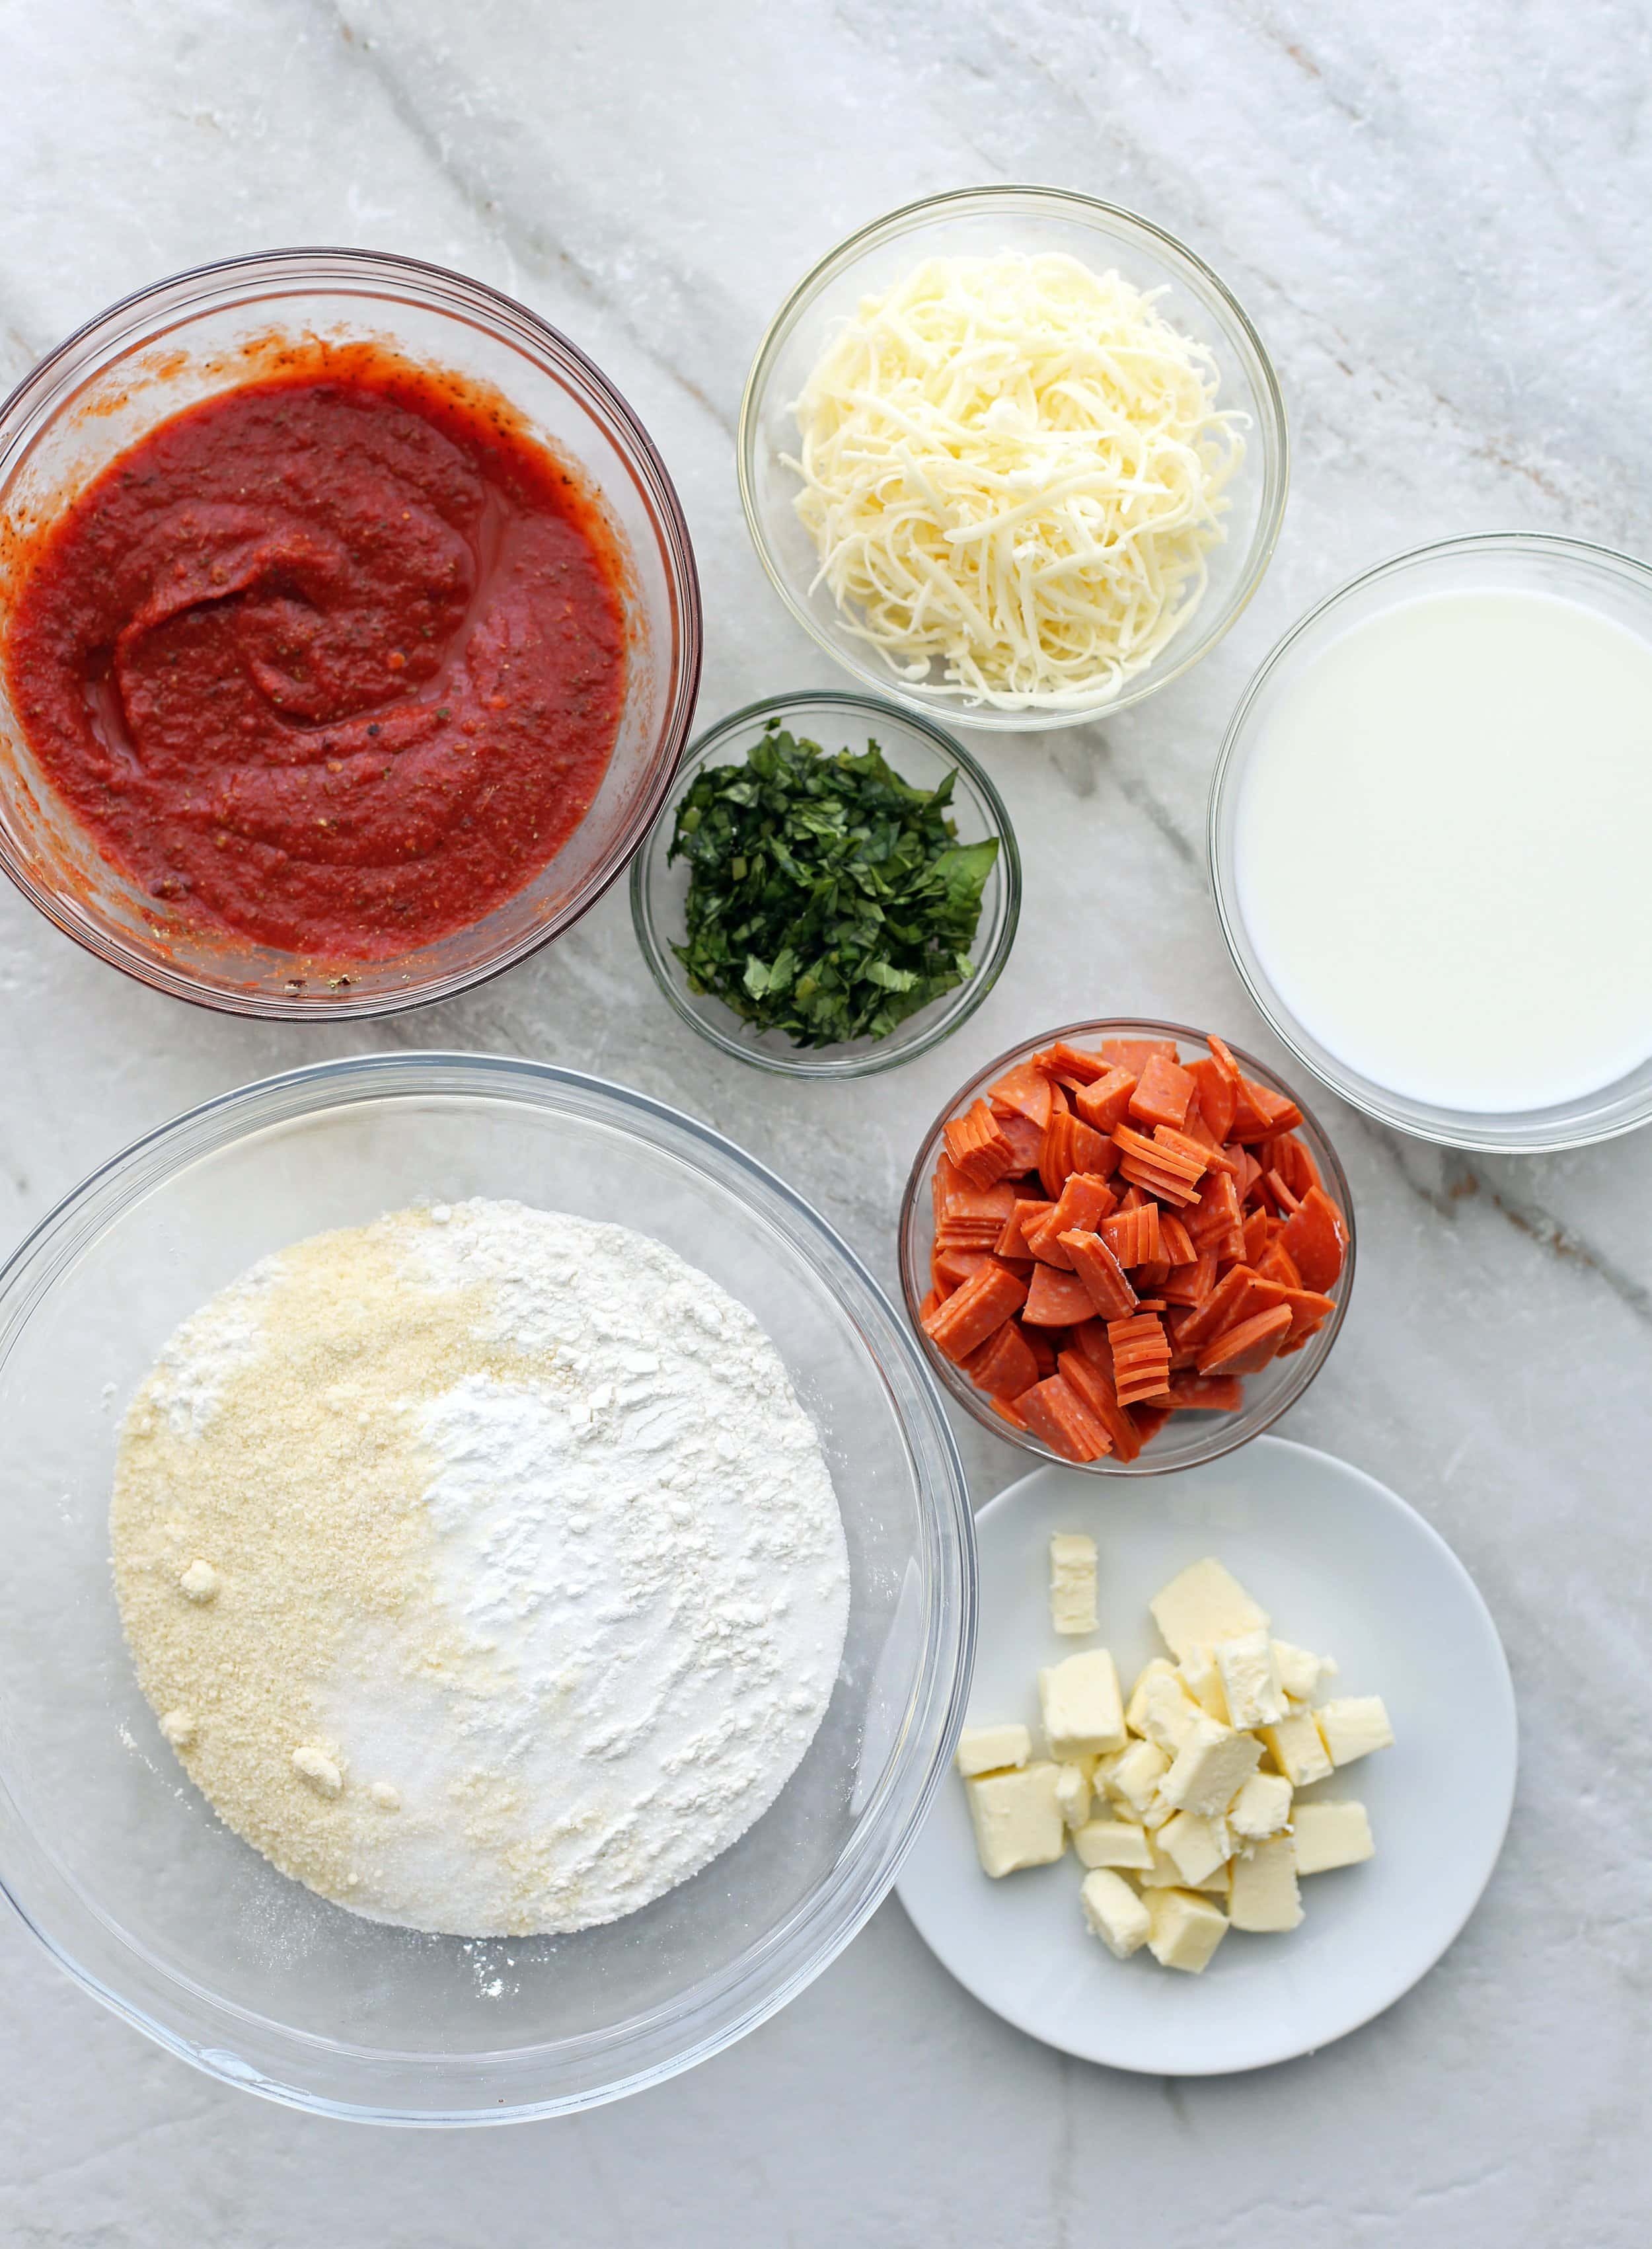 Bowls of pepperoni, cheese, fresh basil, pizza sauce, flour mixture, milk, and butter.